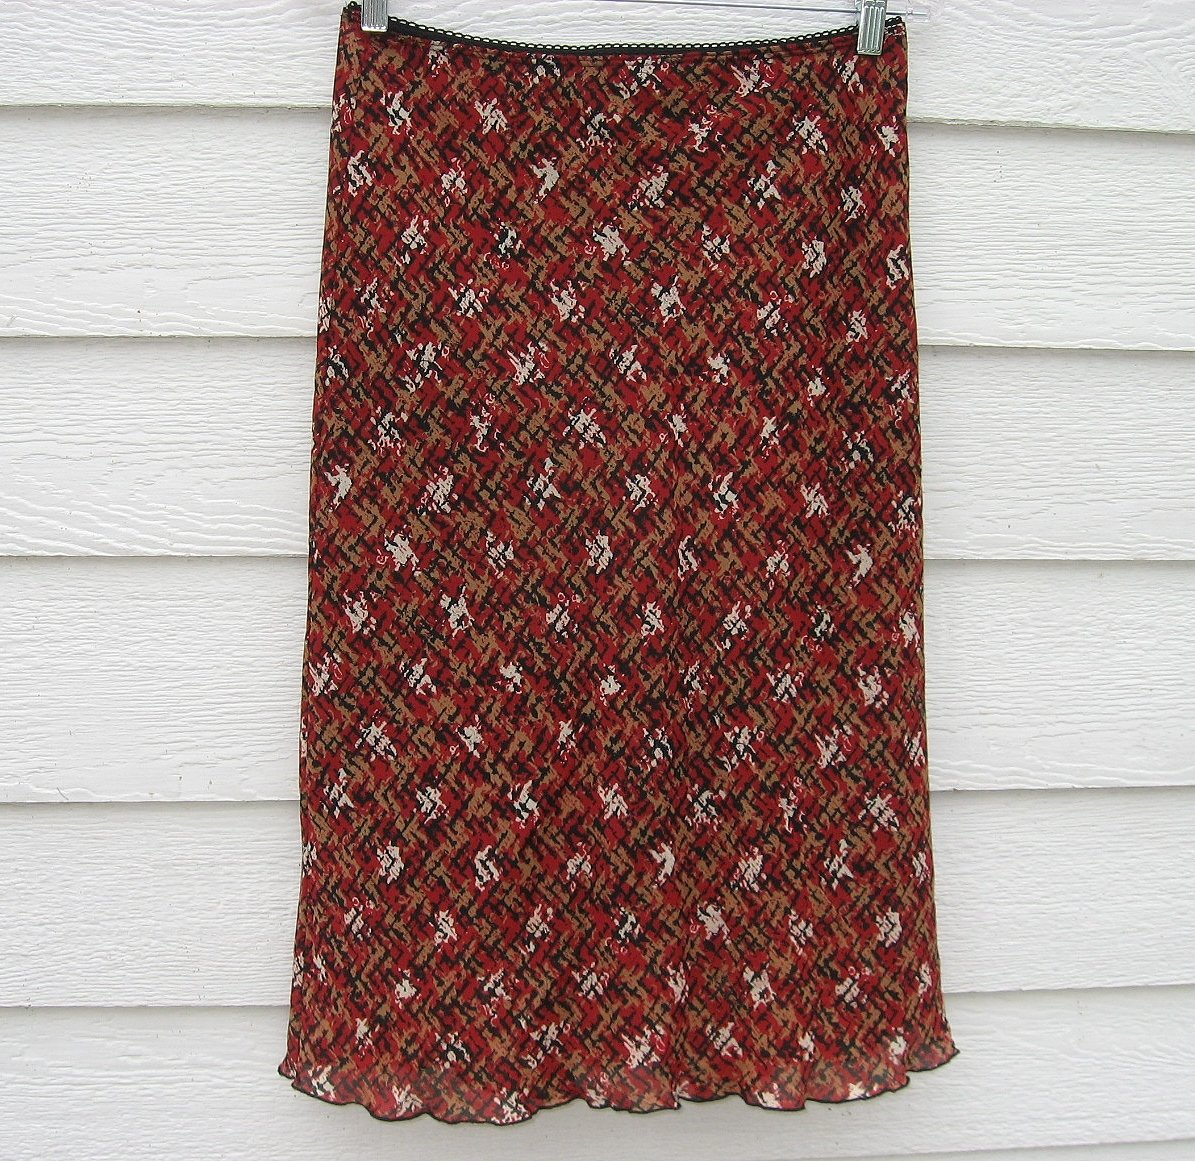 LaBelle FashionsSkirt 7 28 Waist  Red Black Pattern Layer CLEARANCE